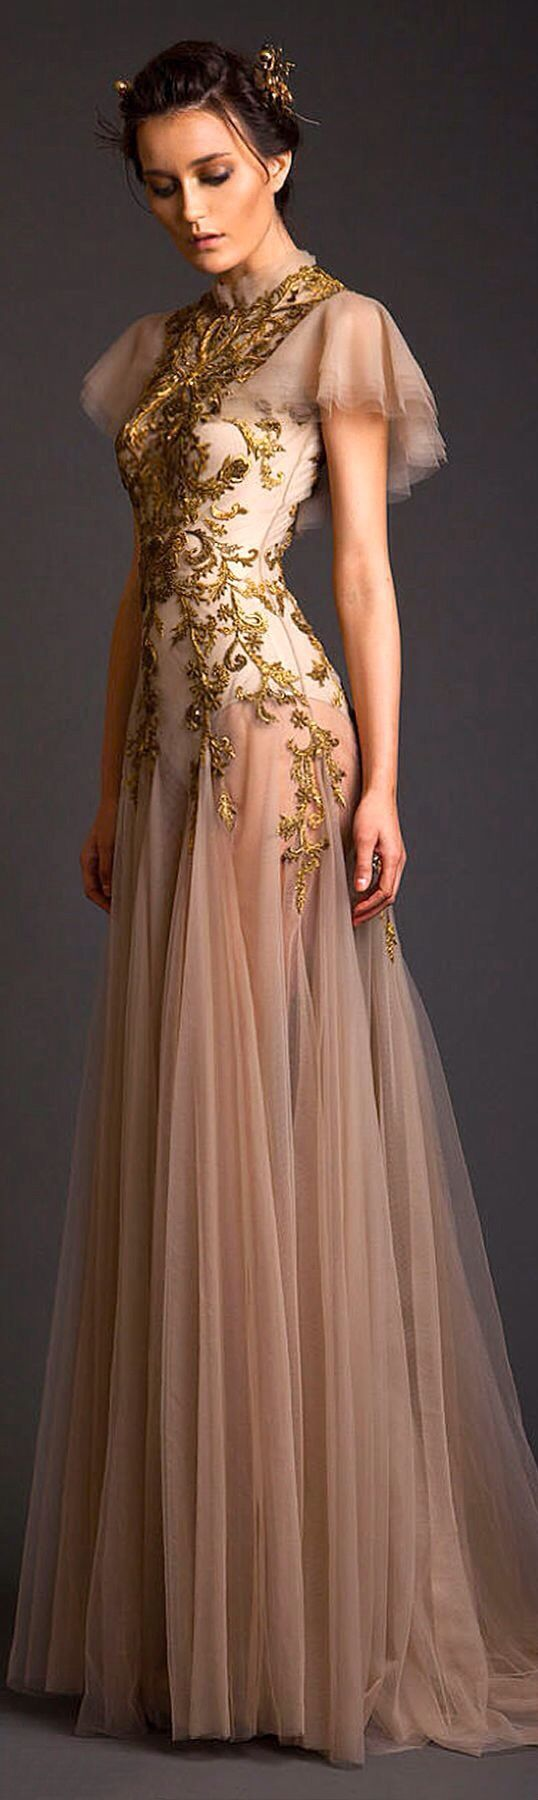 This should go in levanas dresses but I feel it it to pure and pretty, maybe cinder?